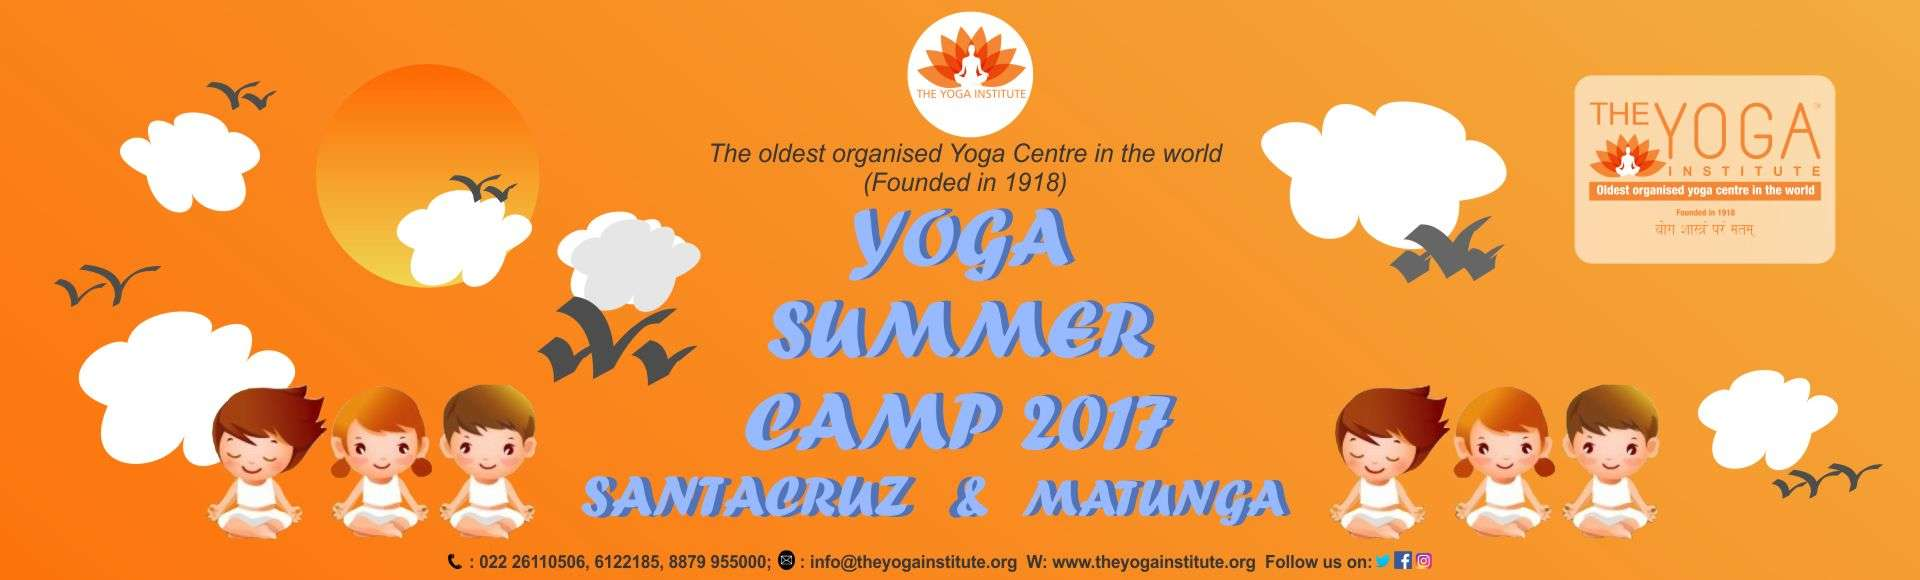 Summer camp for children 2017